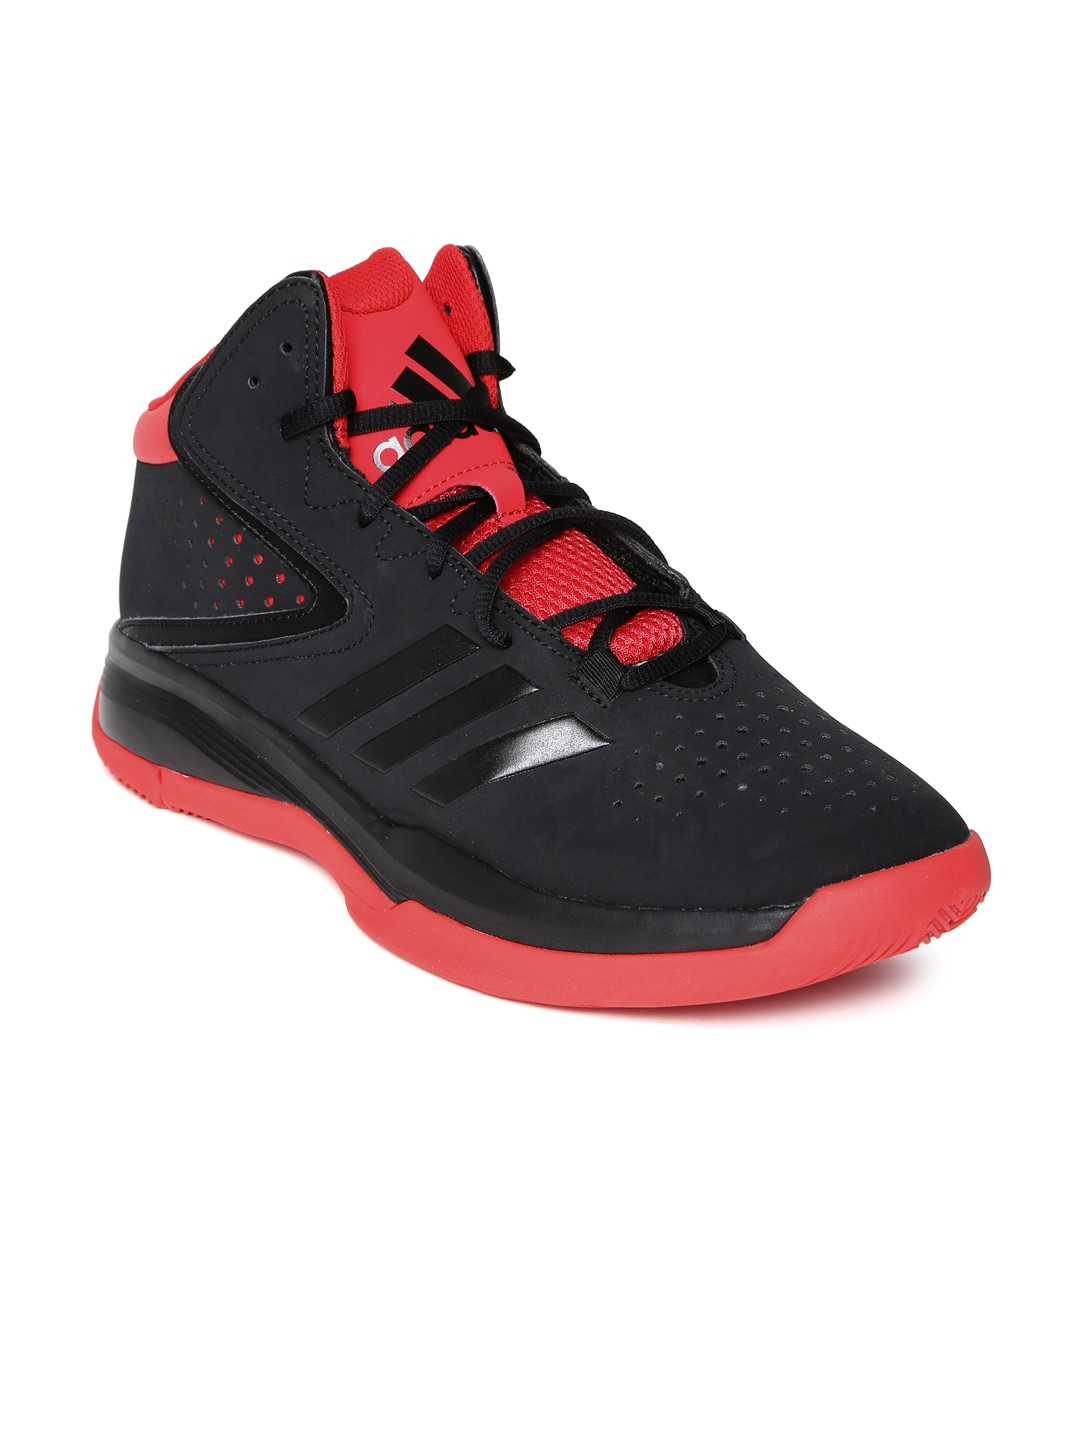 a39da4b666b Adidas Mens Footwear - Buy Adidas Mens Footwear online in India